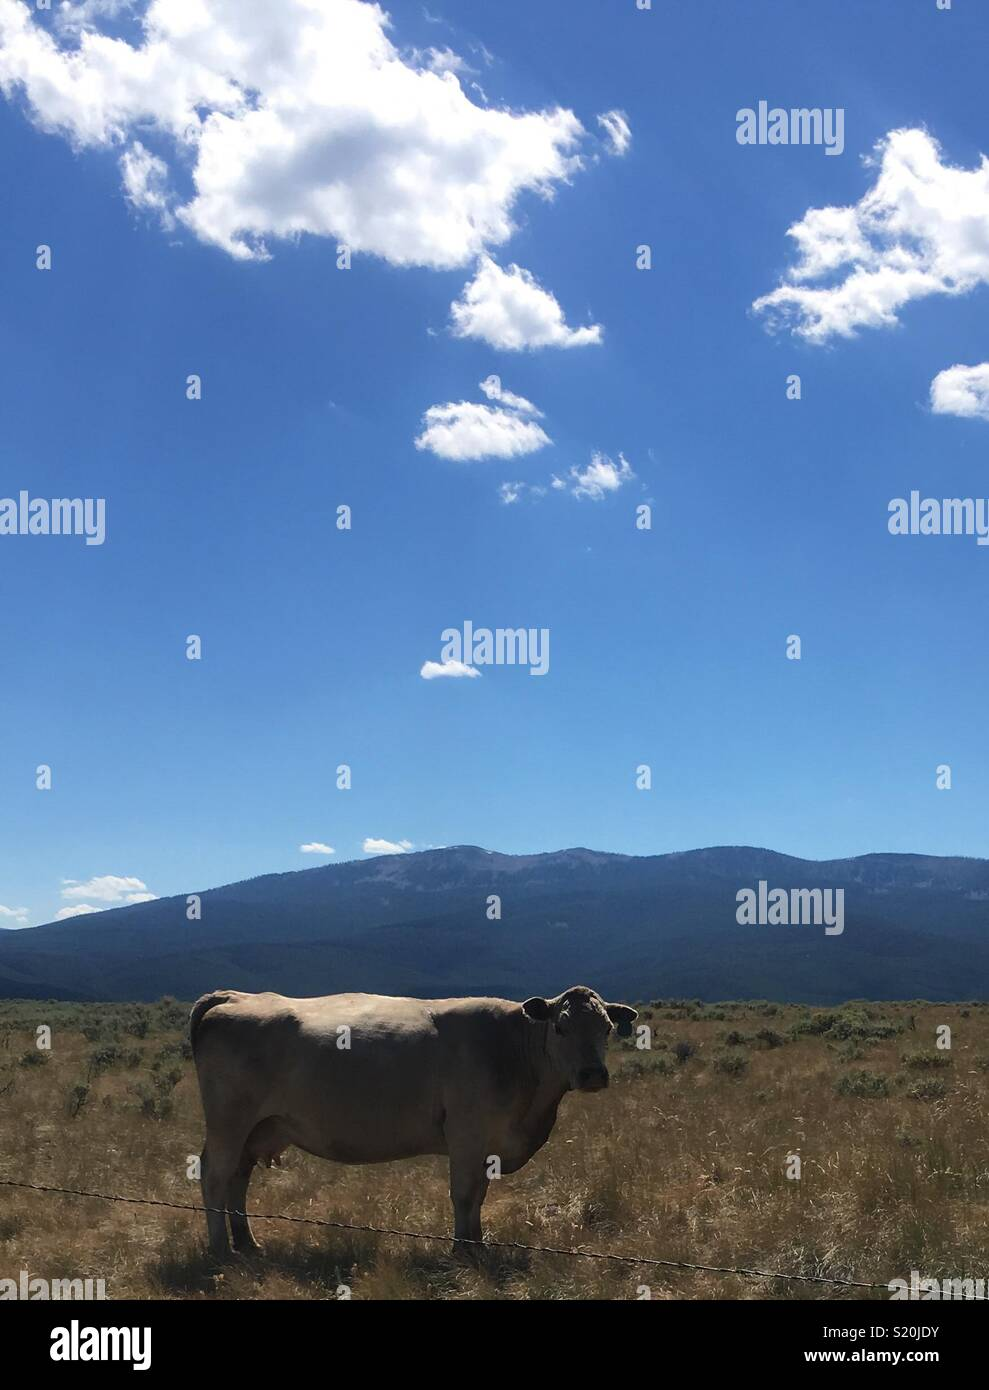 Cow on top of the mountain - Stock Image